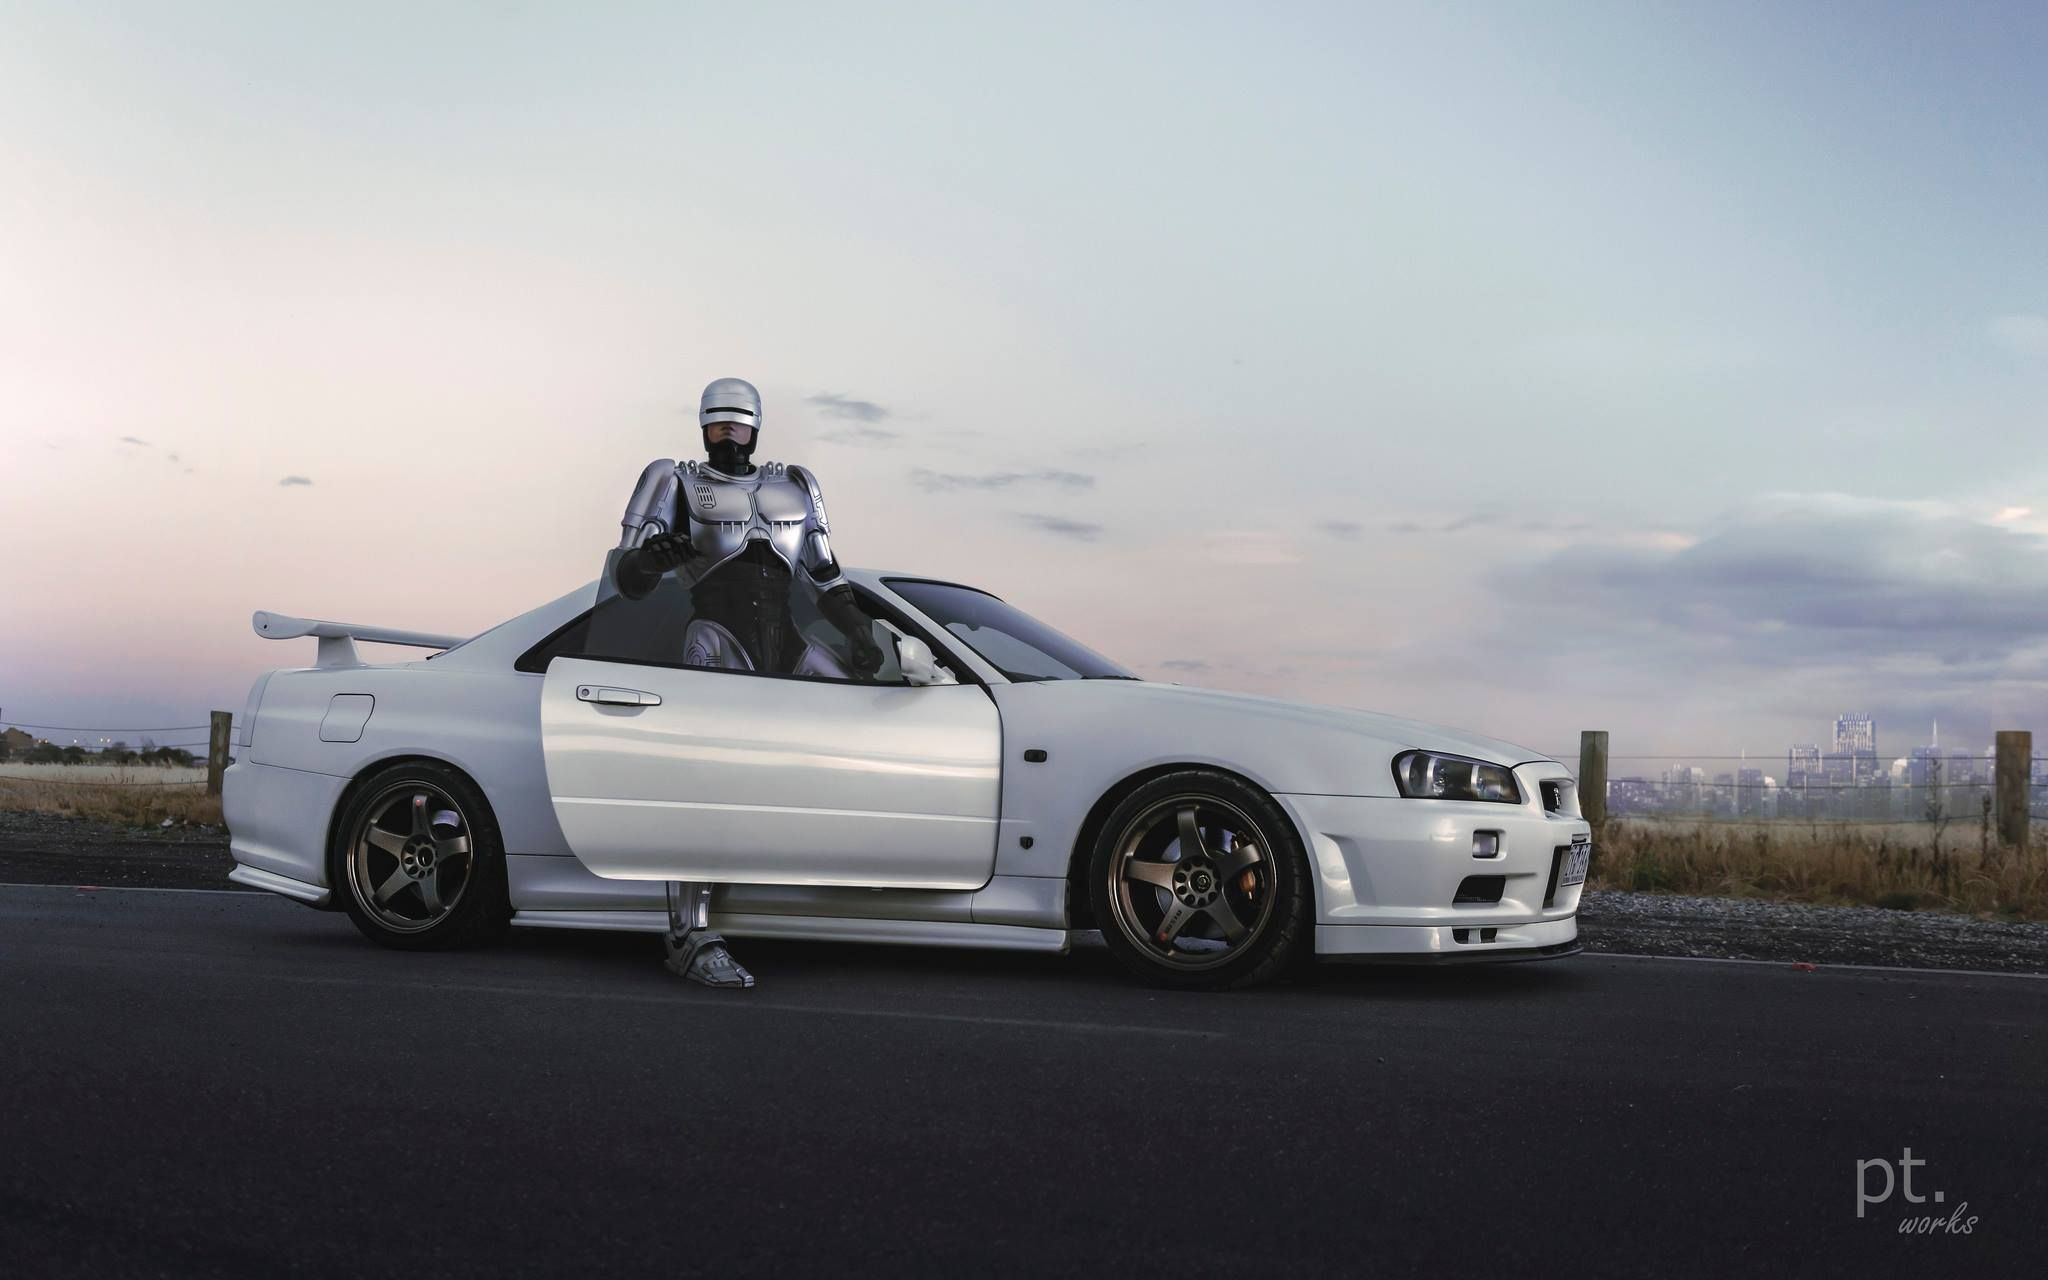 Nissan GT-R R34   Other Cars   Pinterest   Nissan, Nissan gt and Cars